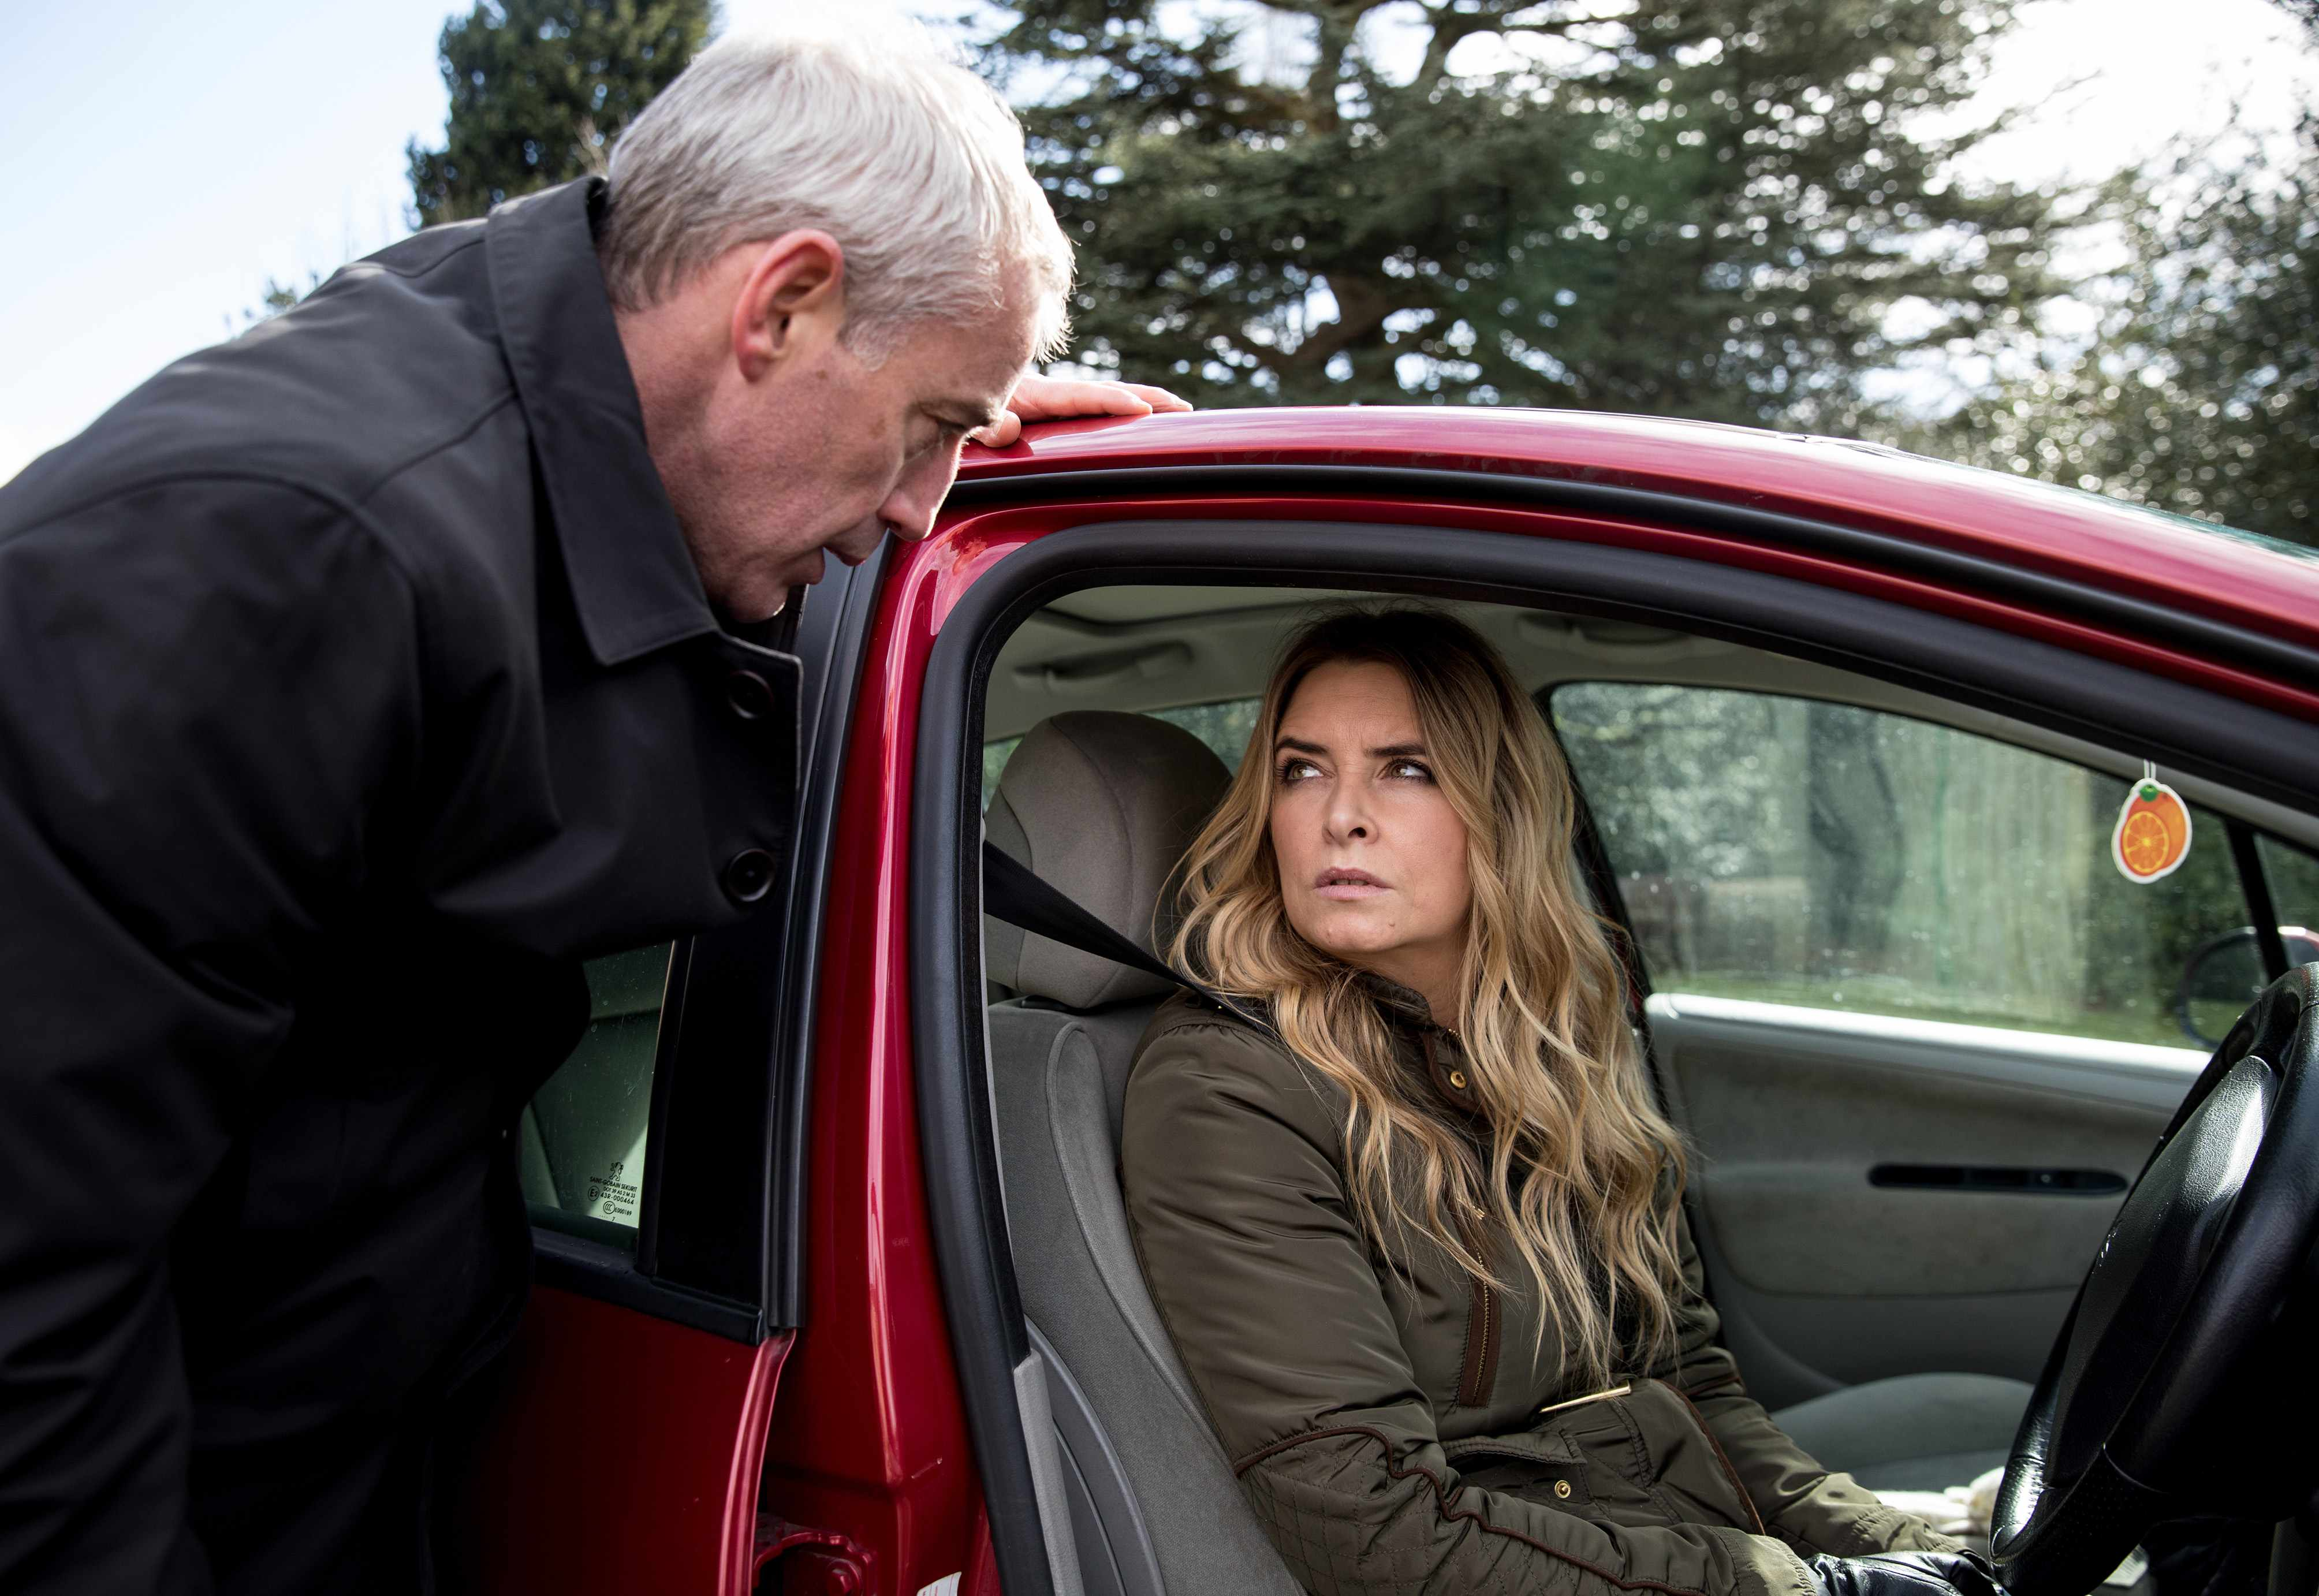 FROM ITV   STRICT EMBARGO - No Use Before Tuesday 17th April 2018  Emmerdale - Ep 8134  Thursday 26th April 2018 - 2nd ep  Bails [ROCKY MARSHALL] makes Charity Charity Dingle [EMMA ATKINS] a proposition which leaves her gobsmacked   Picture contact - david.crook@itv.com  Photographer - Amy Brammall  This photograph is (C) ITV Plc and can only be reproduced for editorial purposes directly in connection with the programme or event mentioned above, or ITV plc. Once made available by ITV plc Picture Desk, this photograph can be reproduced once only up until the transmission [TX] date and no reproduction fee will be charged. Any subsequent usage may incur a fee. This photograph must not be manipulated [excluding basic cropping] in a manner which alters the visual appearance of the person photographed deemed detrimental or inappropriate by ITV plc Picture Desk. This photograph must not be syndicated to any other company, publication or website, or permanently archived, without the express written permission of ITV Plc Picture Desk. Full Terms and conditions are available on the website www.itvpictures.com